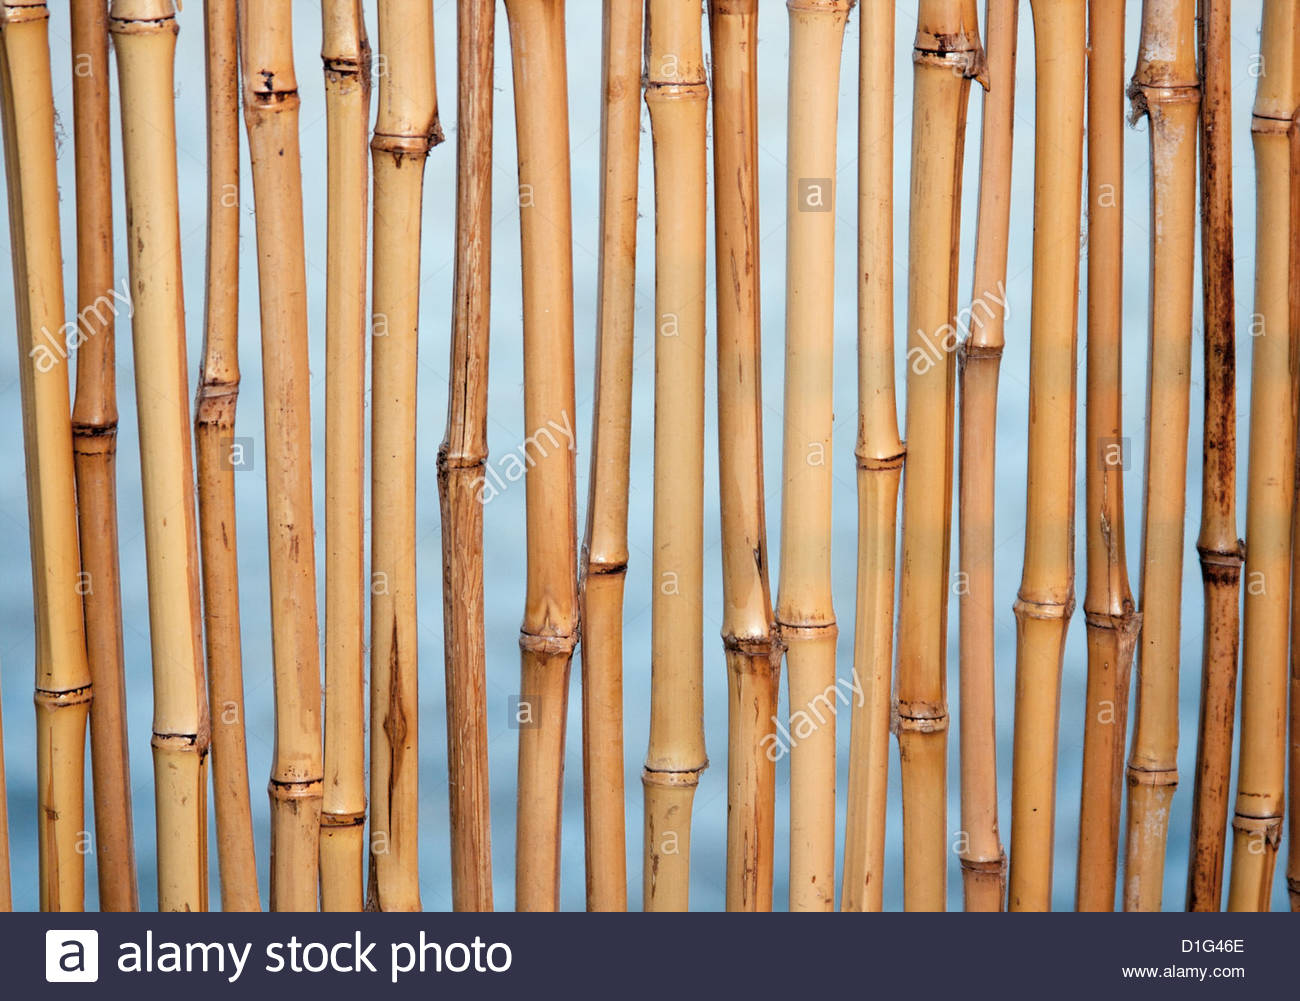 Bamboo background texture with columns of wood Stock Photo 1300x1001